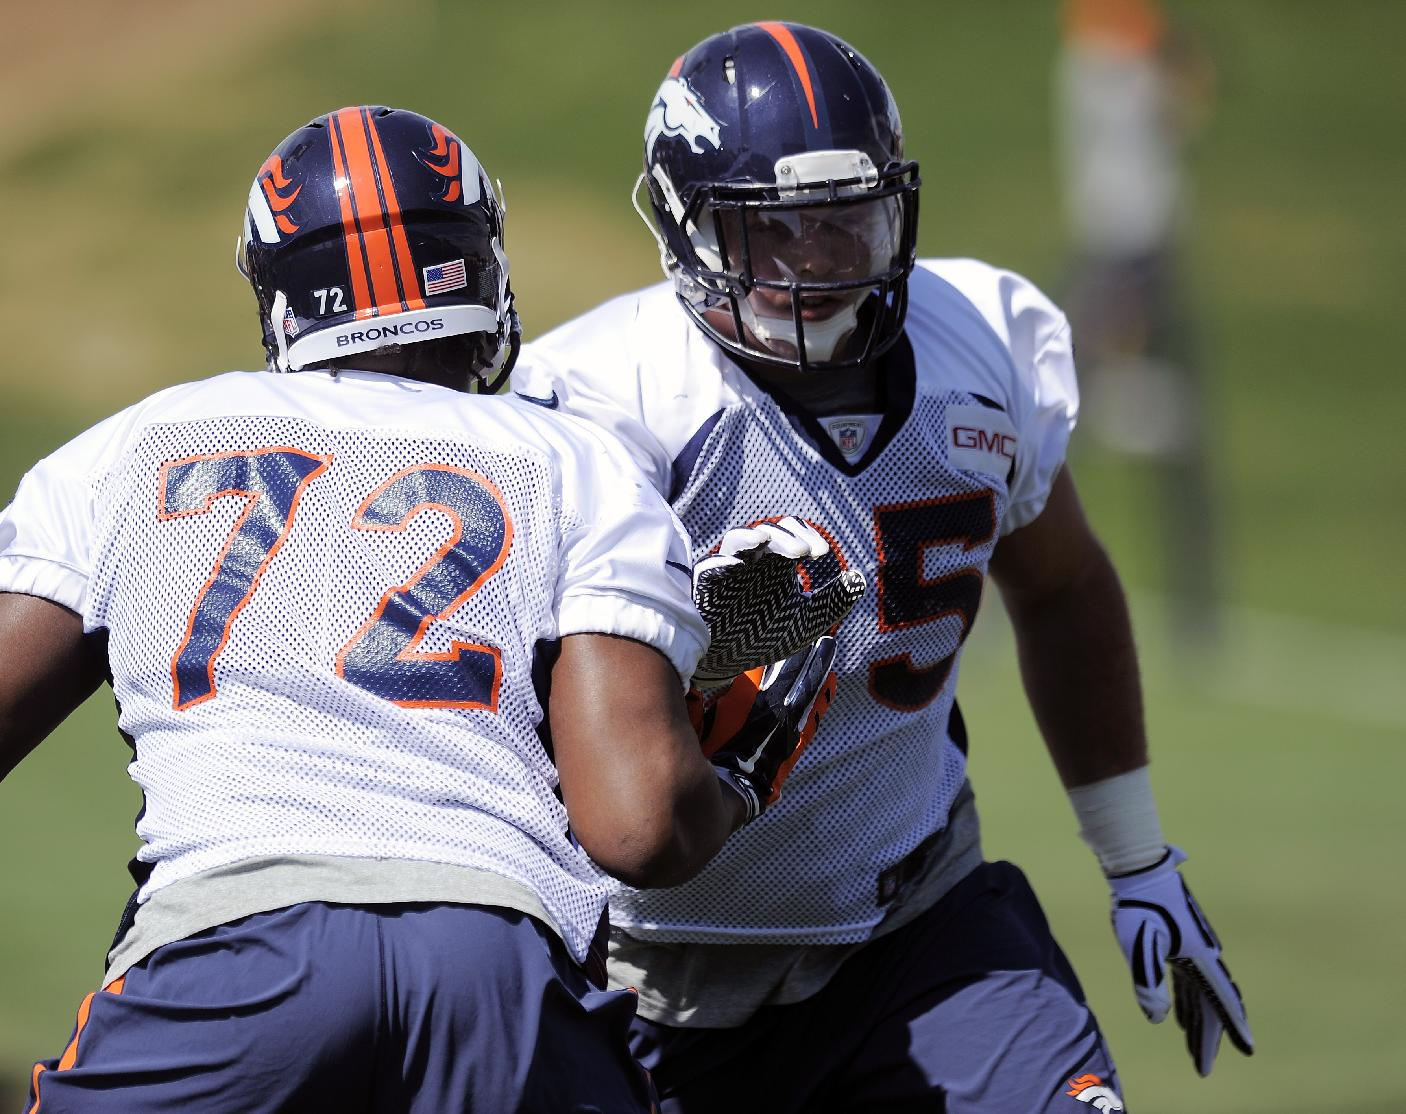 Denver Broncos defensive end Brian Sanford, left, and Denver Broncos defensive end Derek Wolfe, right, run a drill at NFL football practice in Englewood, Colo., on Monday, Aug. 25, 2014